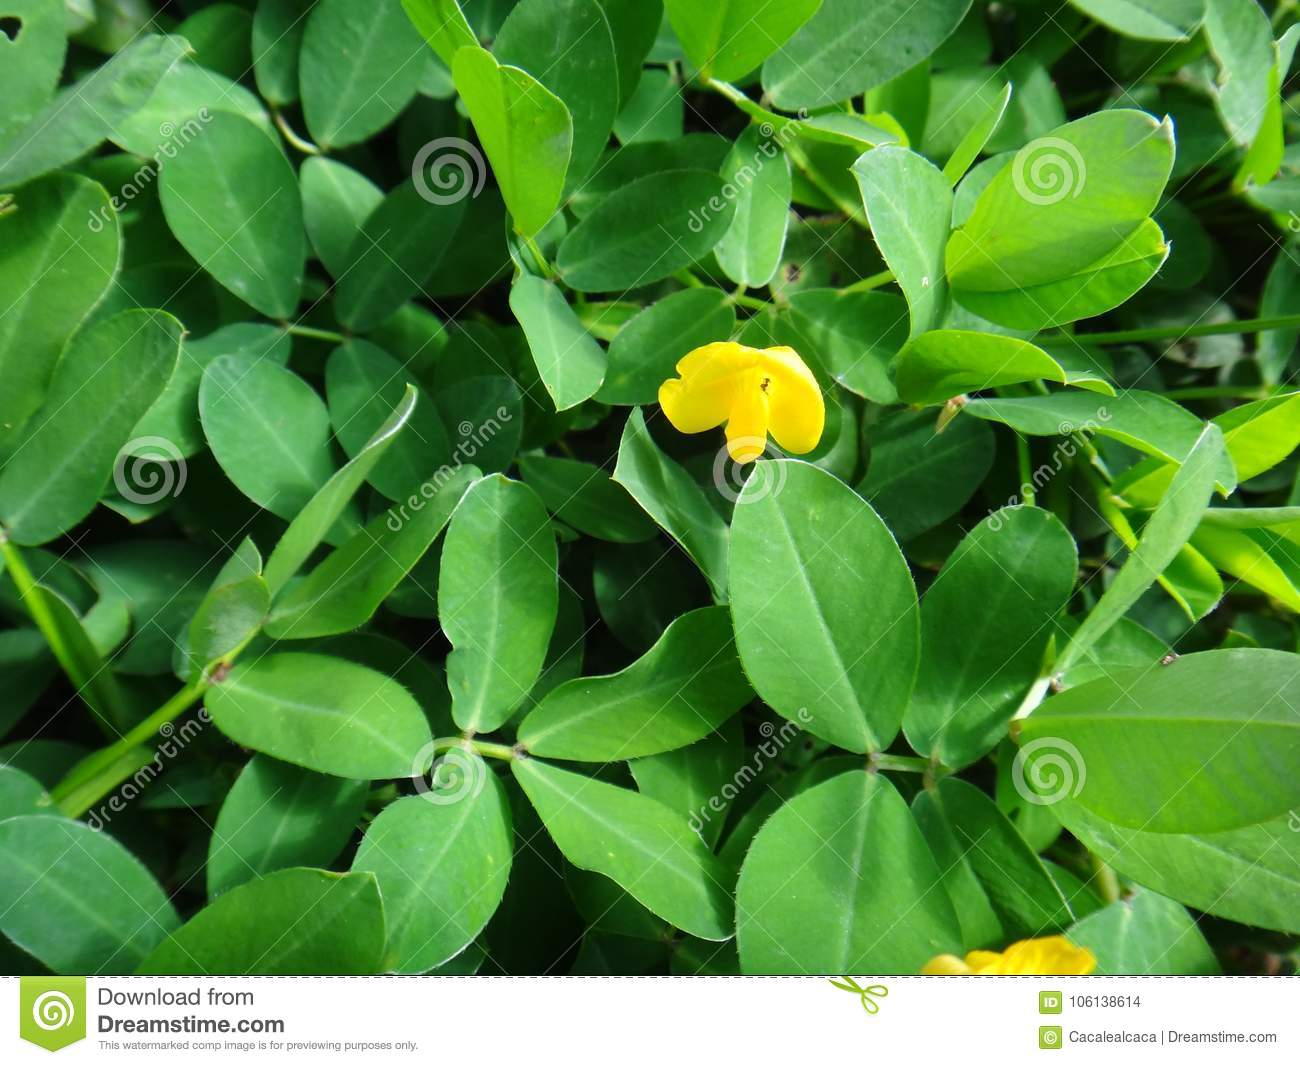 Plant Of The Genus Arachis With Pale To Lemon Yellow Pea Type Flower